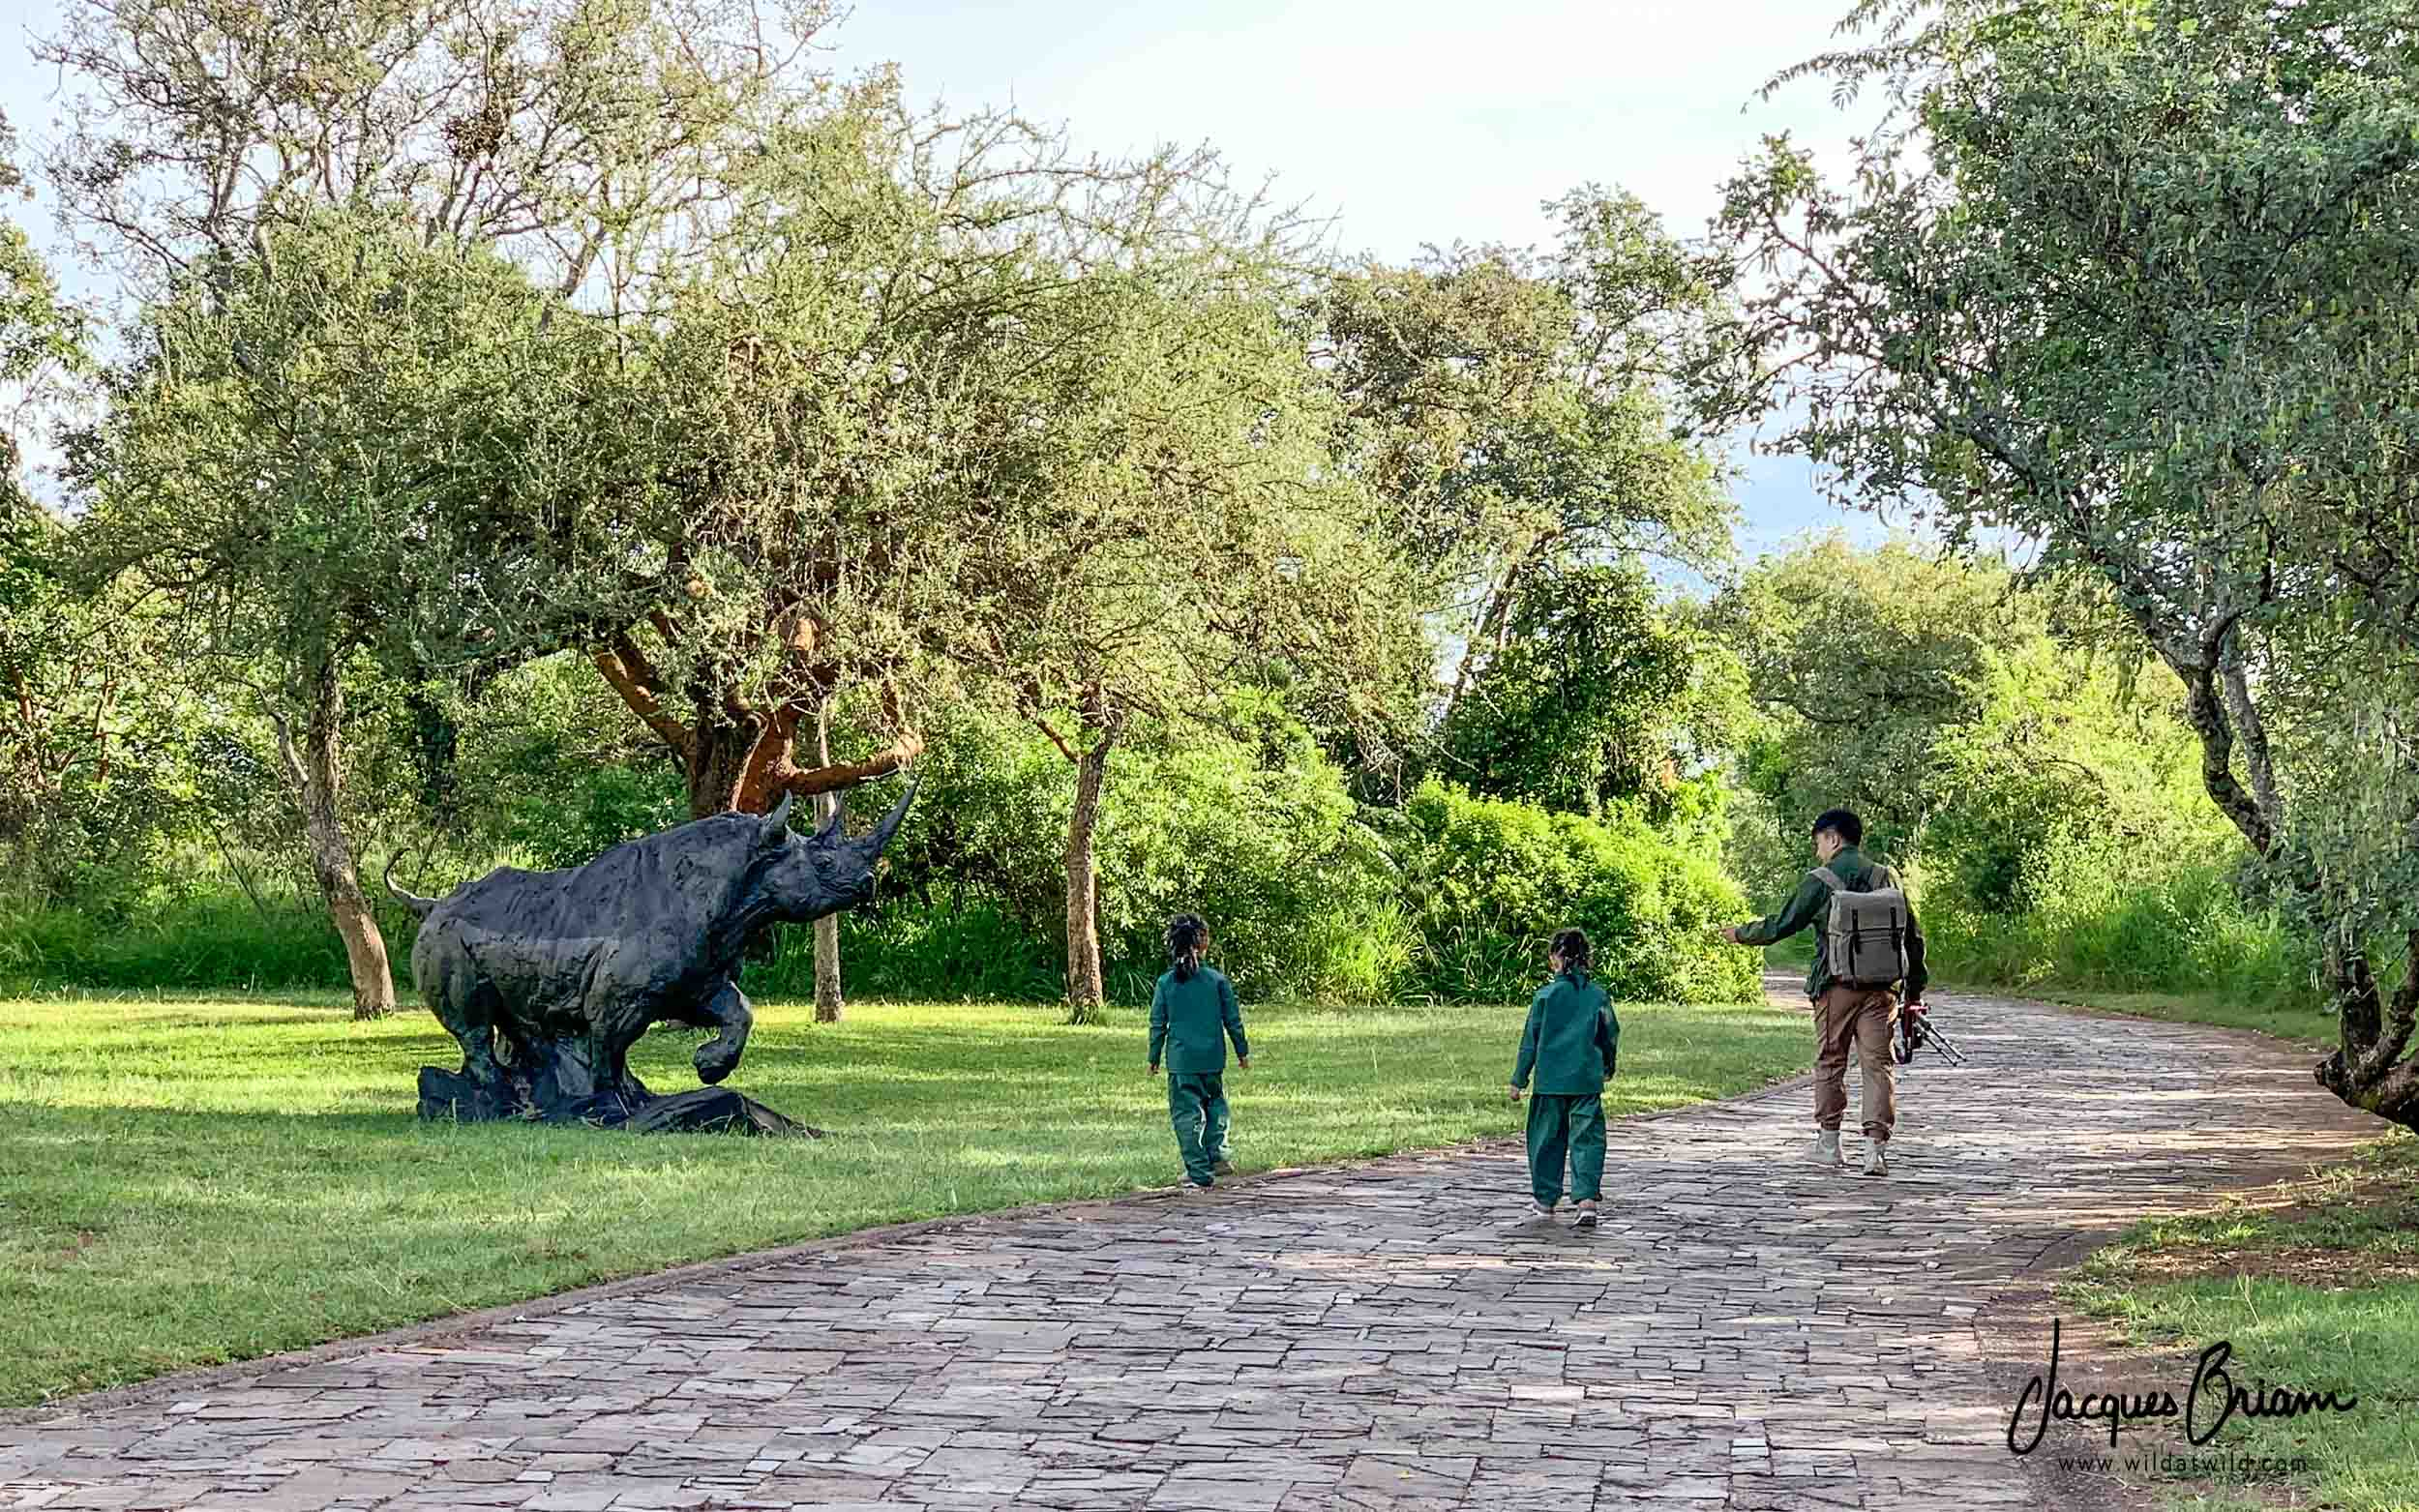 During their first trip to Africa, two young girls walk with their father to experience their only rhino sighting.